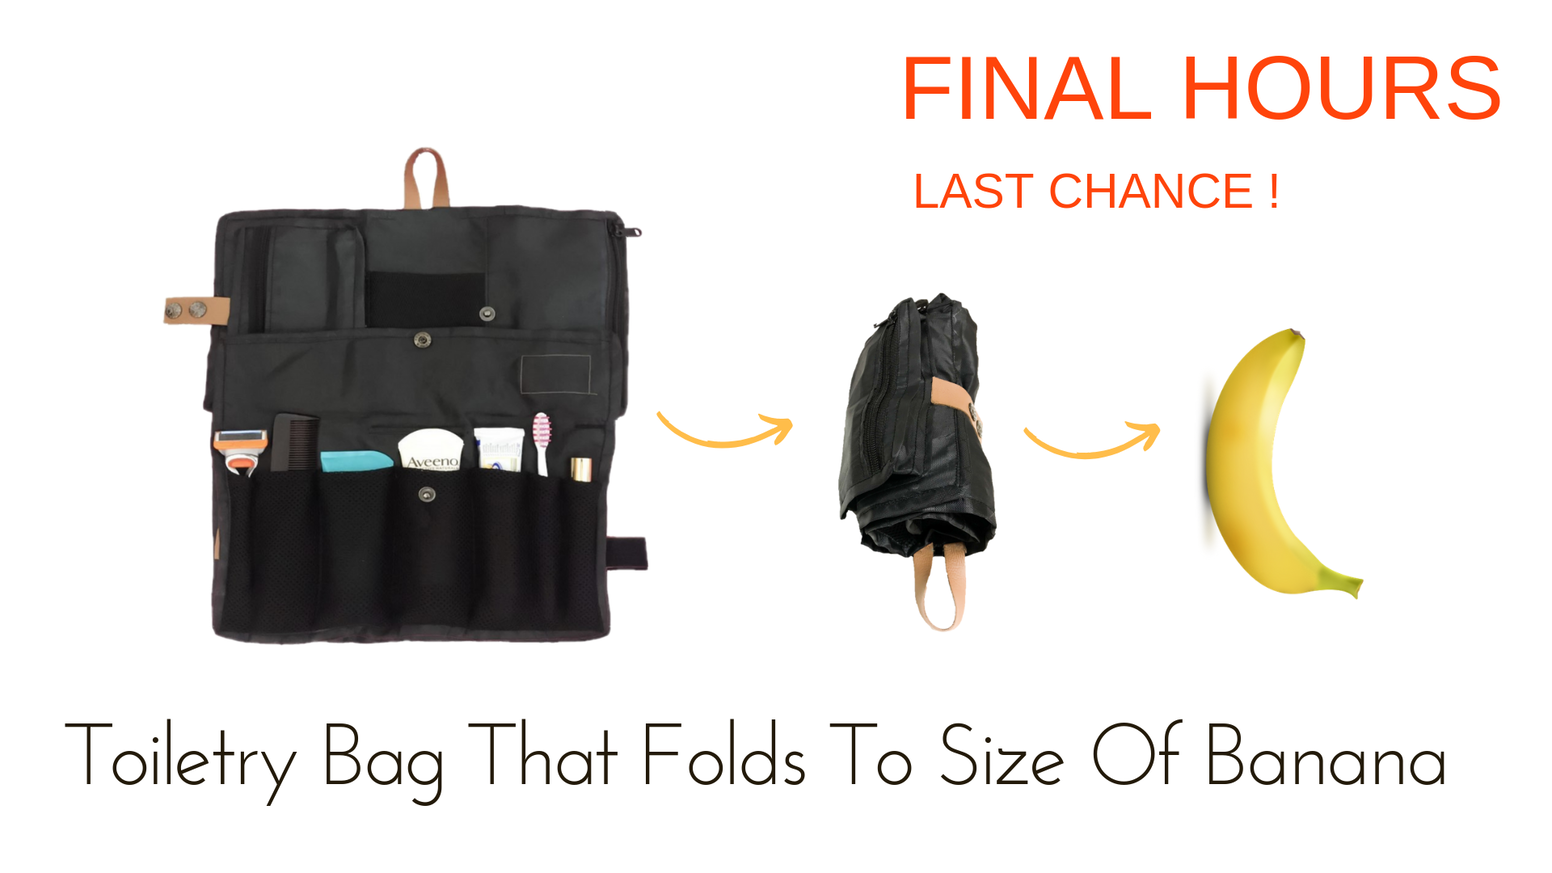 The All-In-One Solution for travel, camping, hiking, gym & adventures. Revolutionary design with 10 pockets, 5 ways to carry.